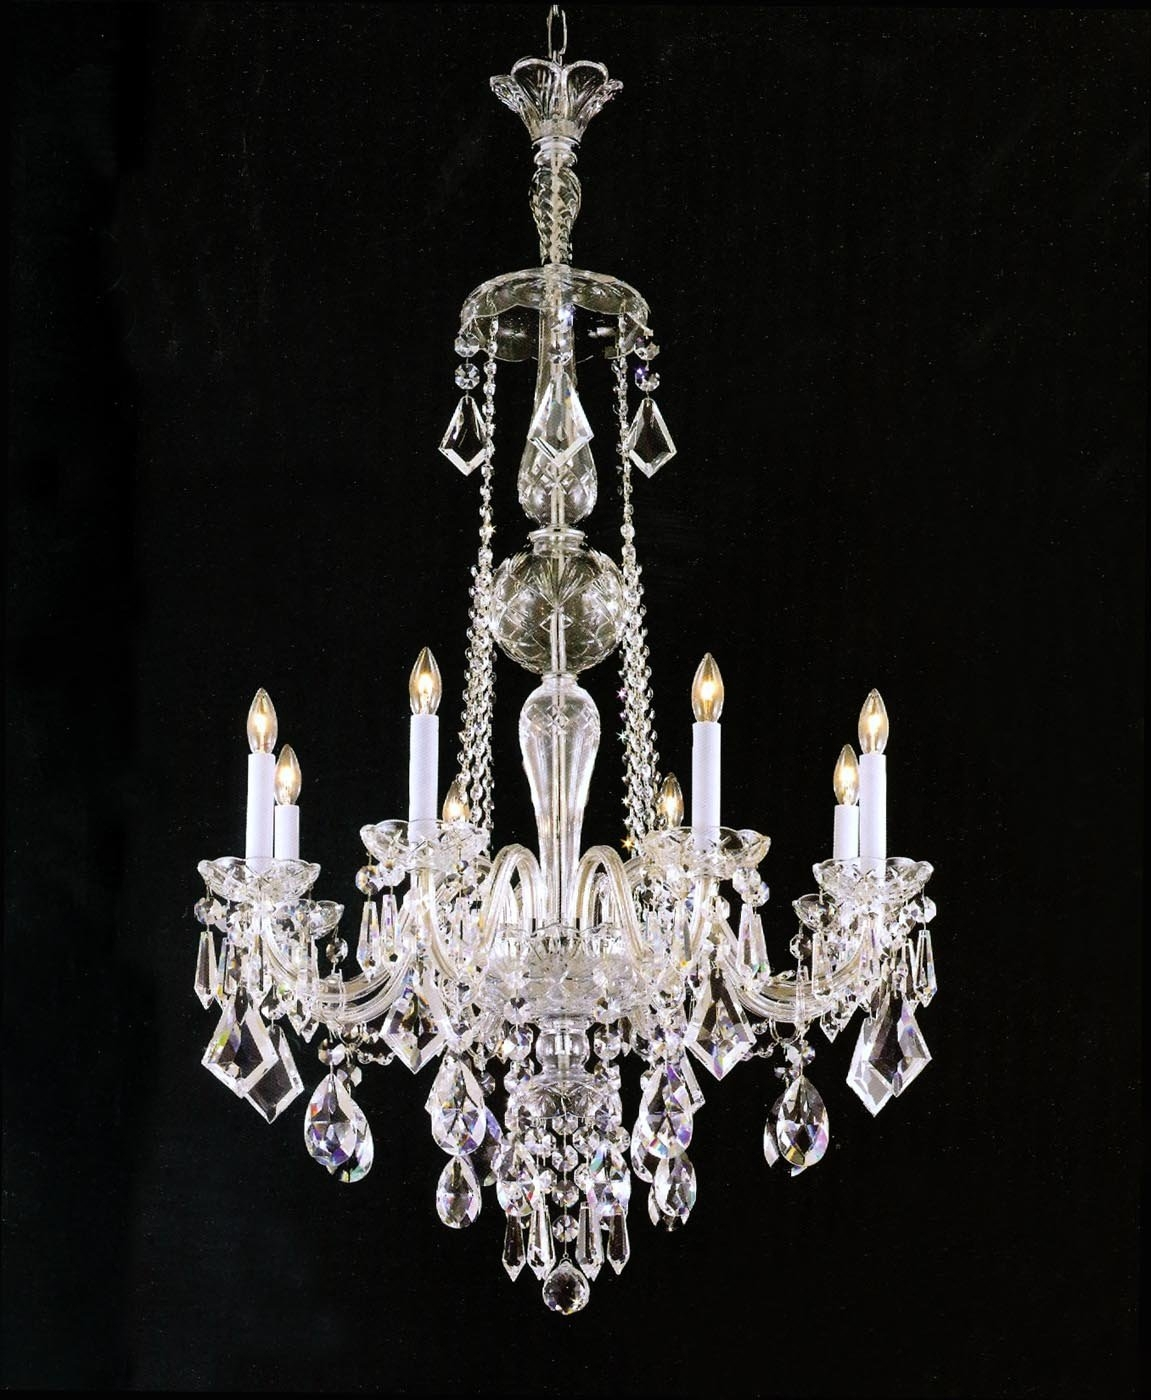 Marvelous Chandeliers With Chandeliers Ceiling Circa Lighting For Within Trendy Chandeliers (#10 of 12)